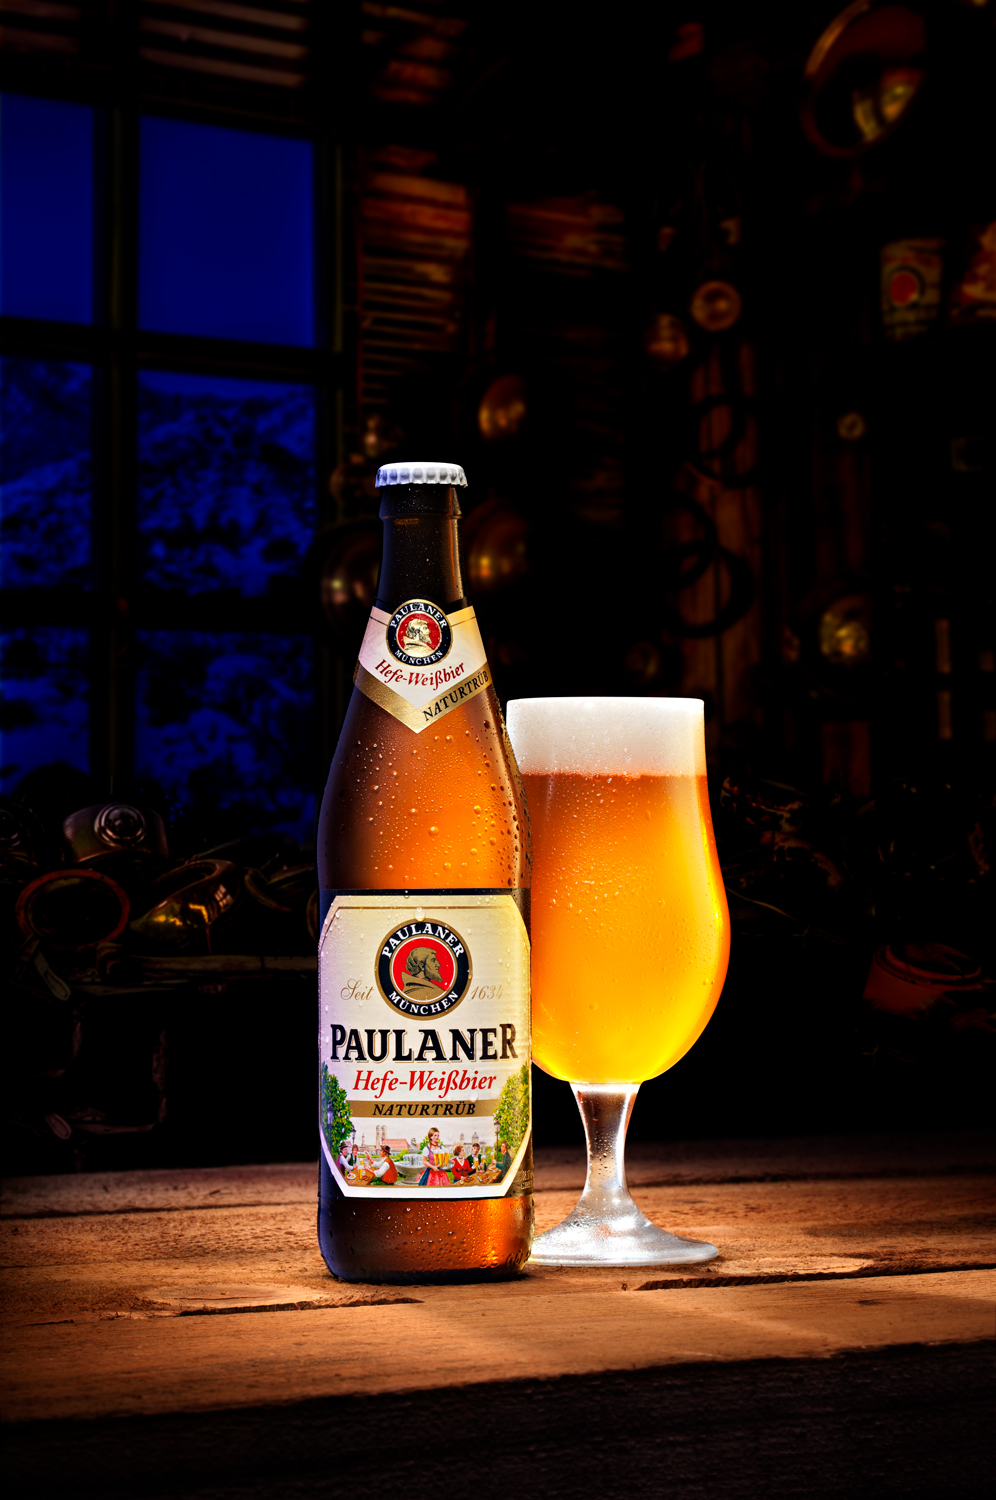 lettstudio_beverage_photography_beer_paulaner.jpg